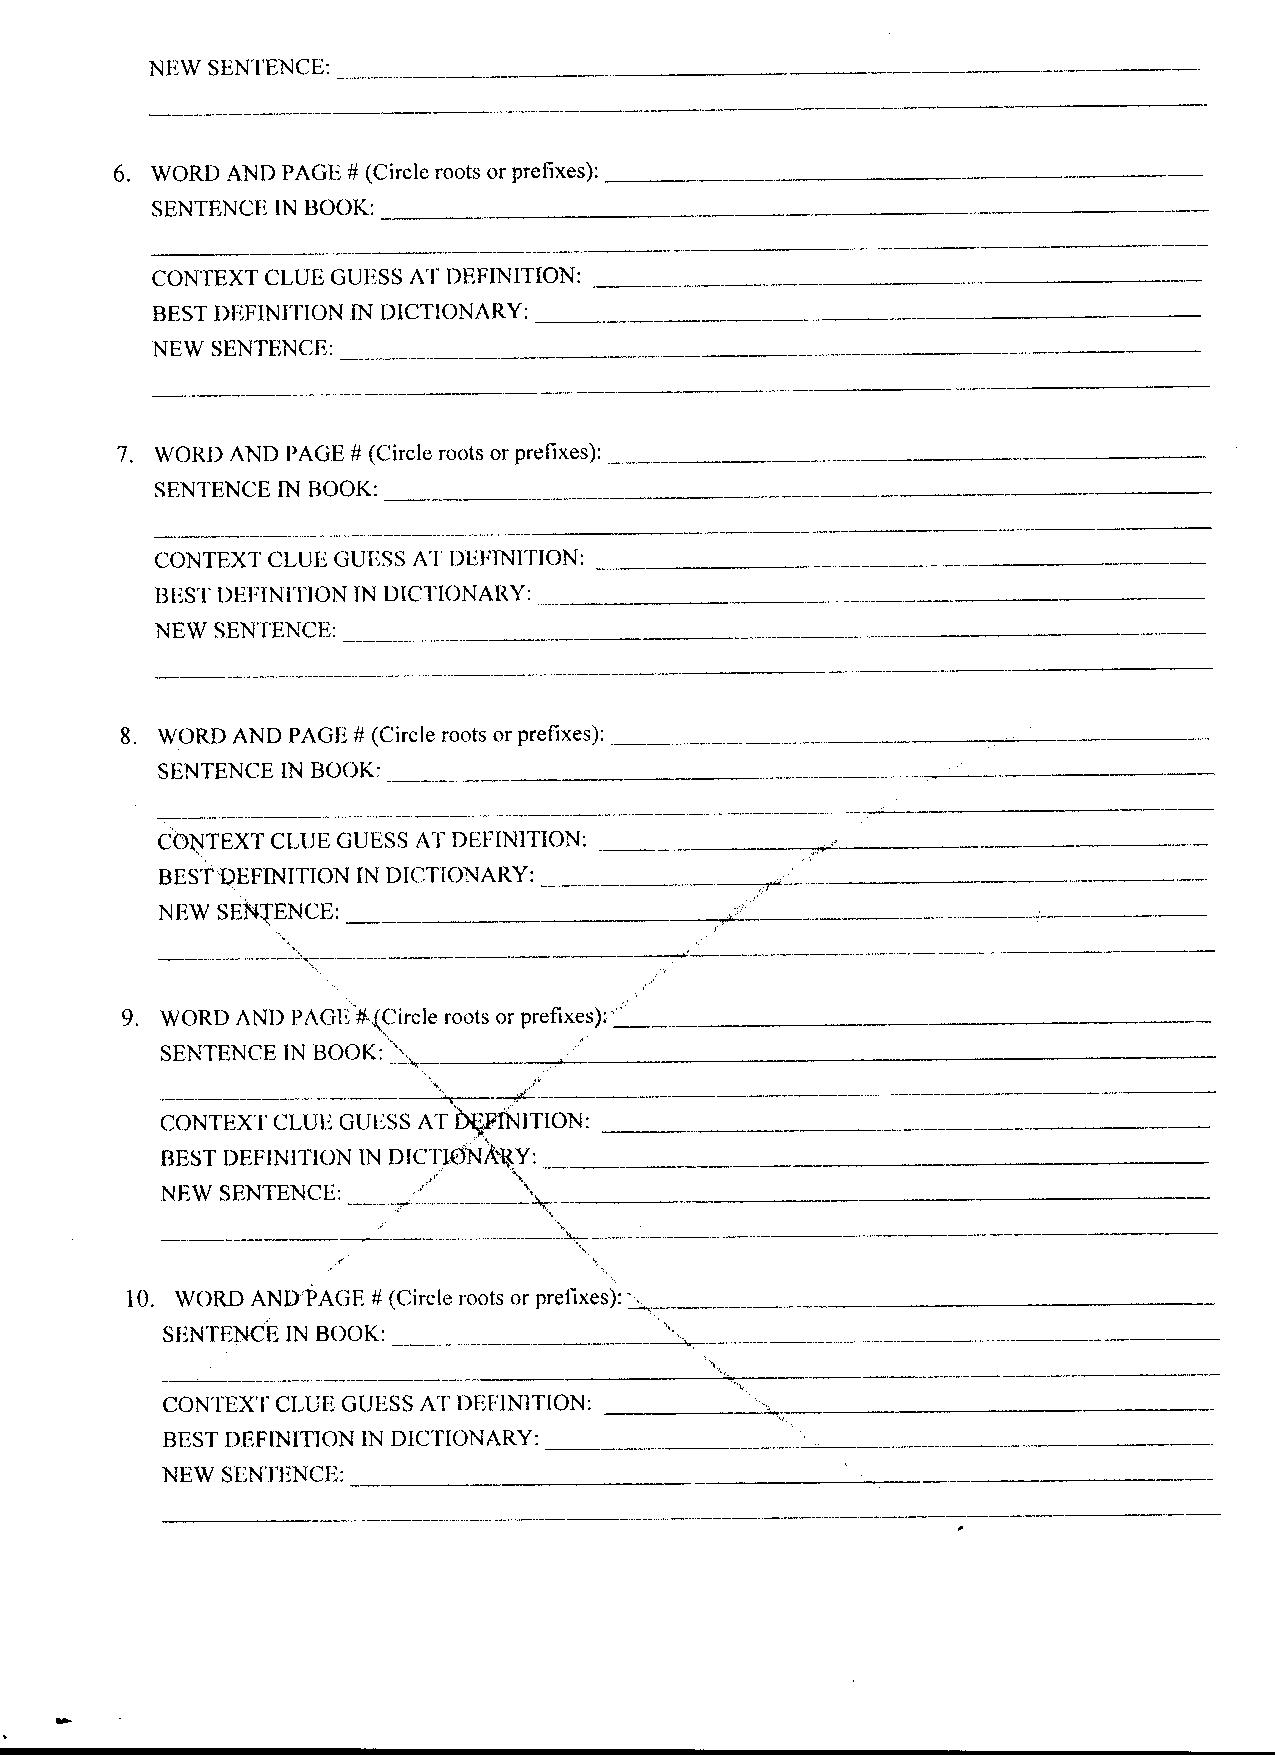 Kitchen Utensils Worksheet Answer Key Empowered By Them Measuring Devices Life Skills Kitchen